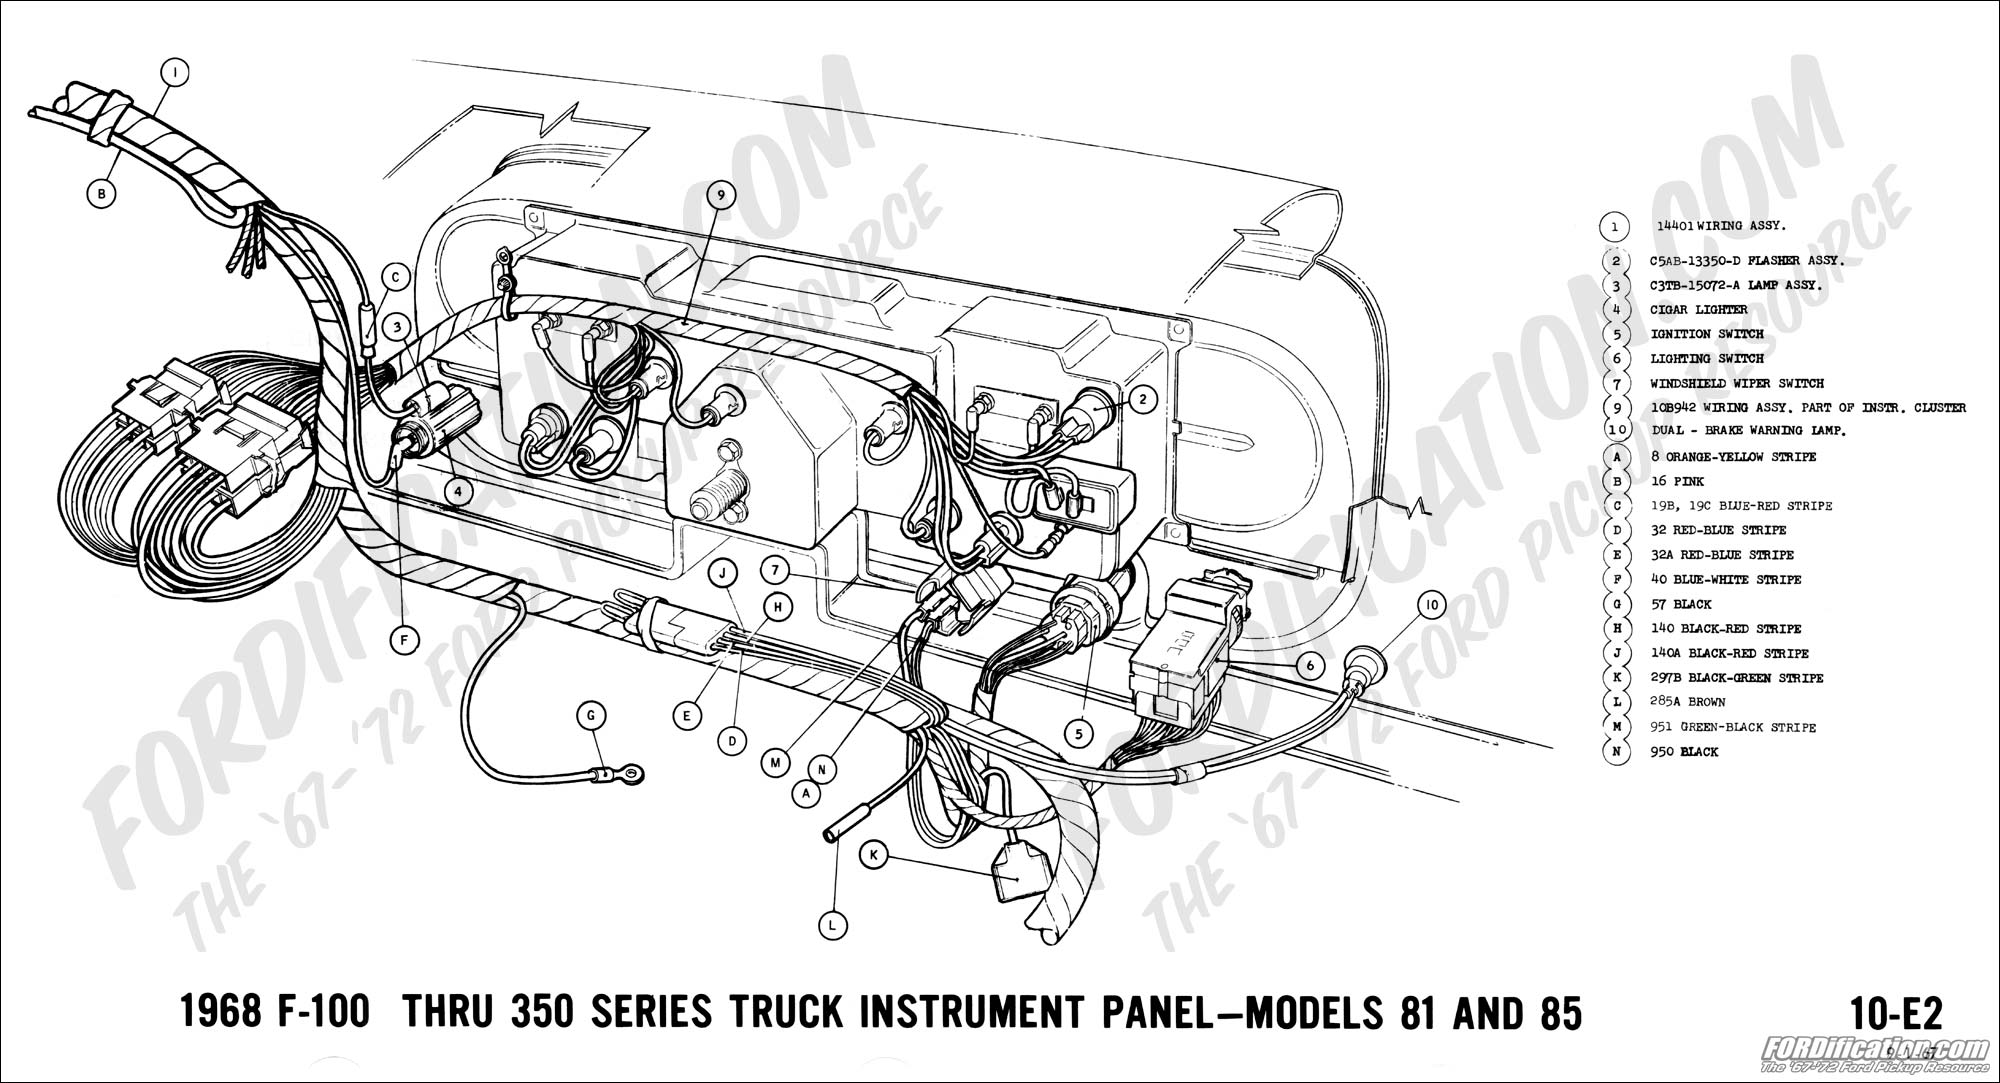 Fordindex in addition 1985 Chevy Truck Power Window Wiring Diagram further 1990 Mustang Turn Signal Wiring Diagram moreover Ford F 150 Exhaust System Diagram E5813093dbb881e8 also 85 Mustang Dash Wiring Diagram. on 1965 ford mustang alternator wiring diagram